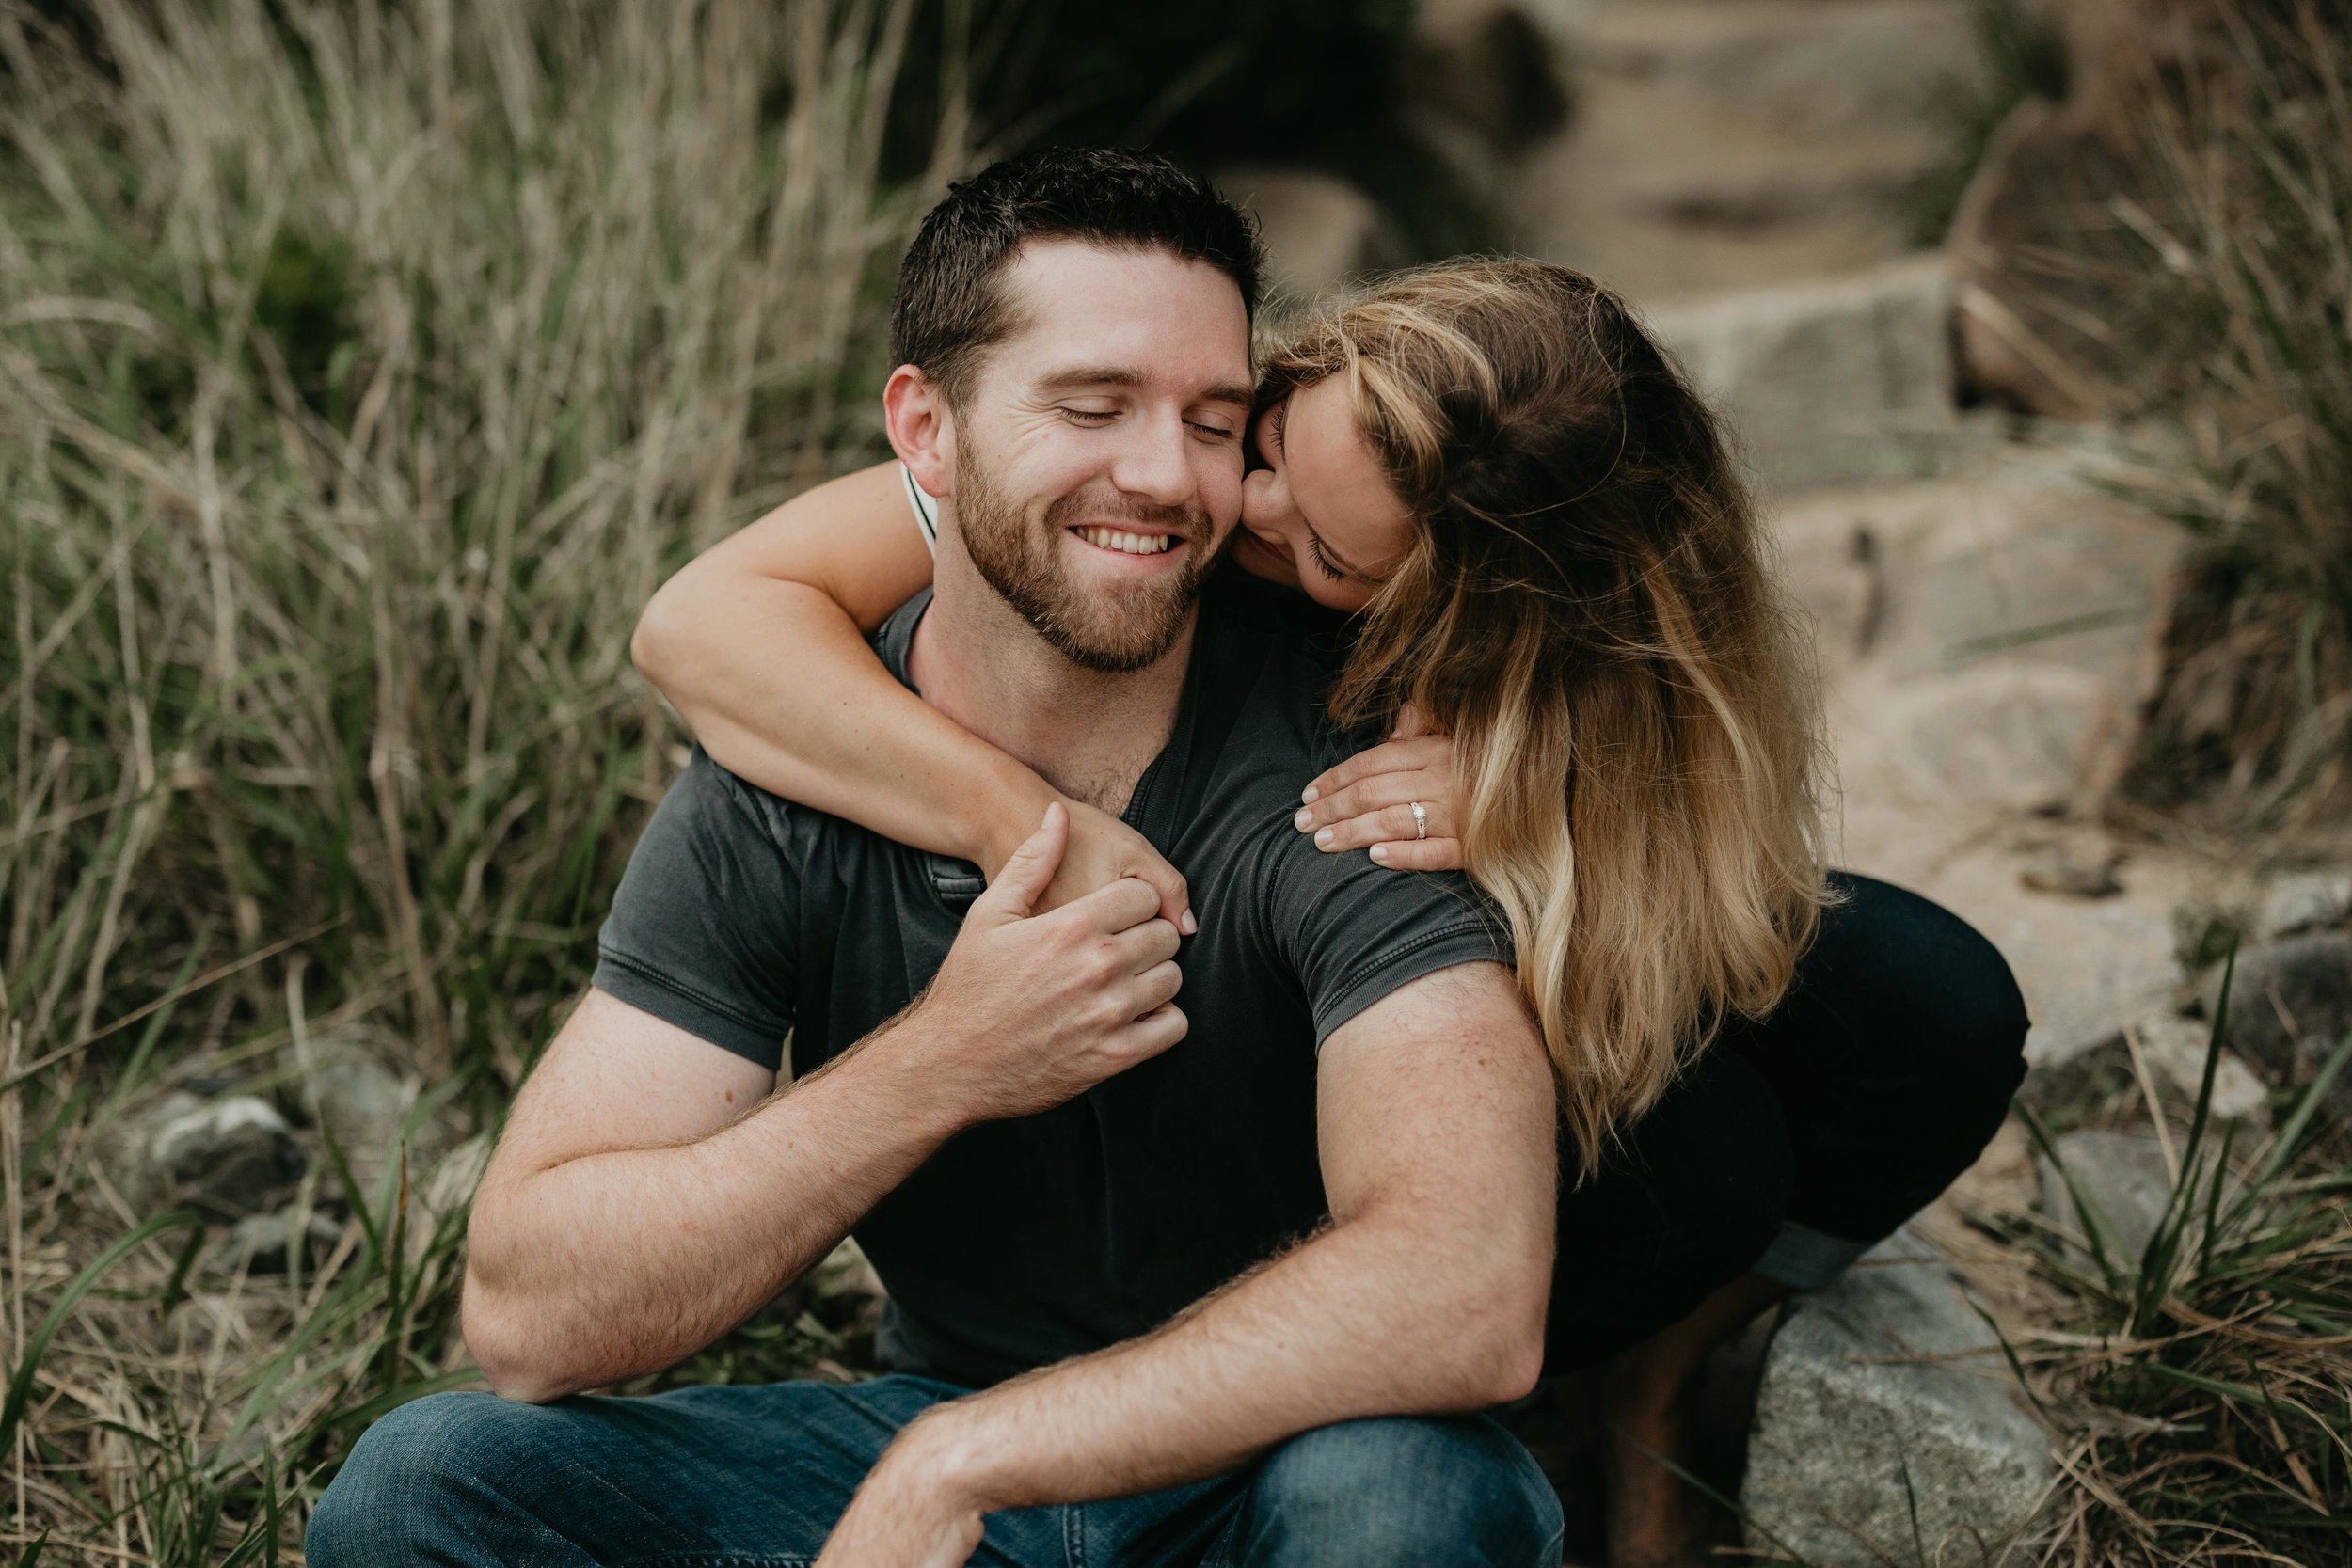 nicole-daacke-photography-acadia-national-park-adventurous-engagement-session-photos-otter-cliffs-forests-coastline-sand-beach-adventure-session-bar-harbor-mt-desert-island-elopement-fall-bass-harbor-lighthouse-wedding-maine-landscape-photographer-11.jpg